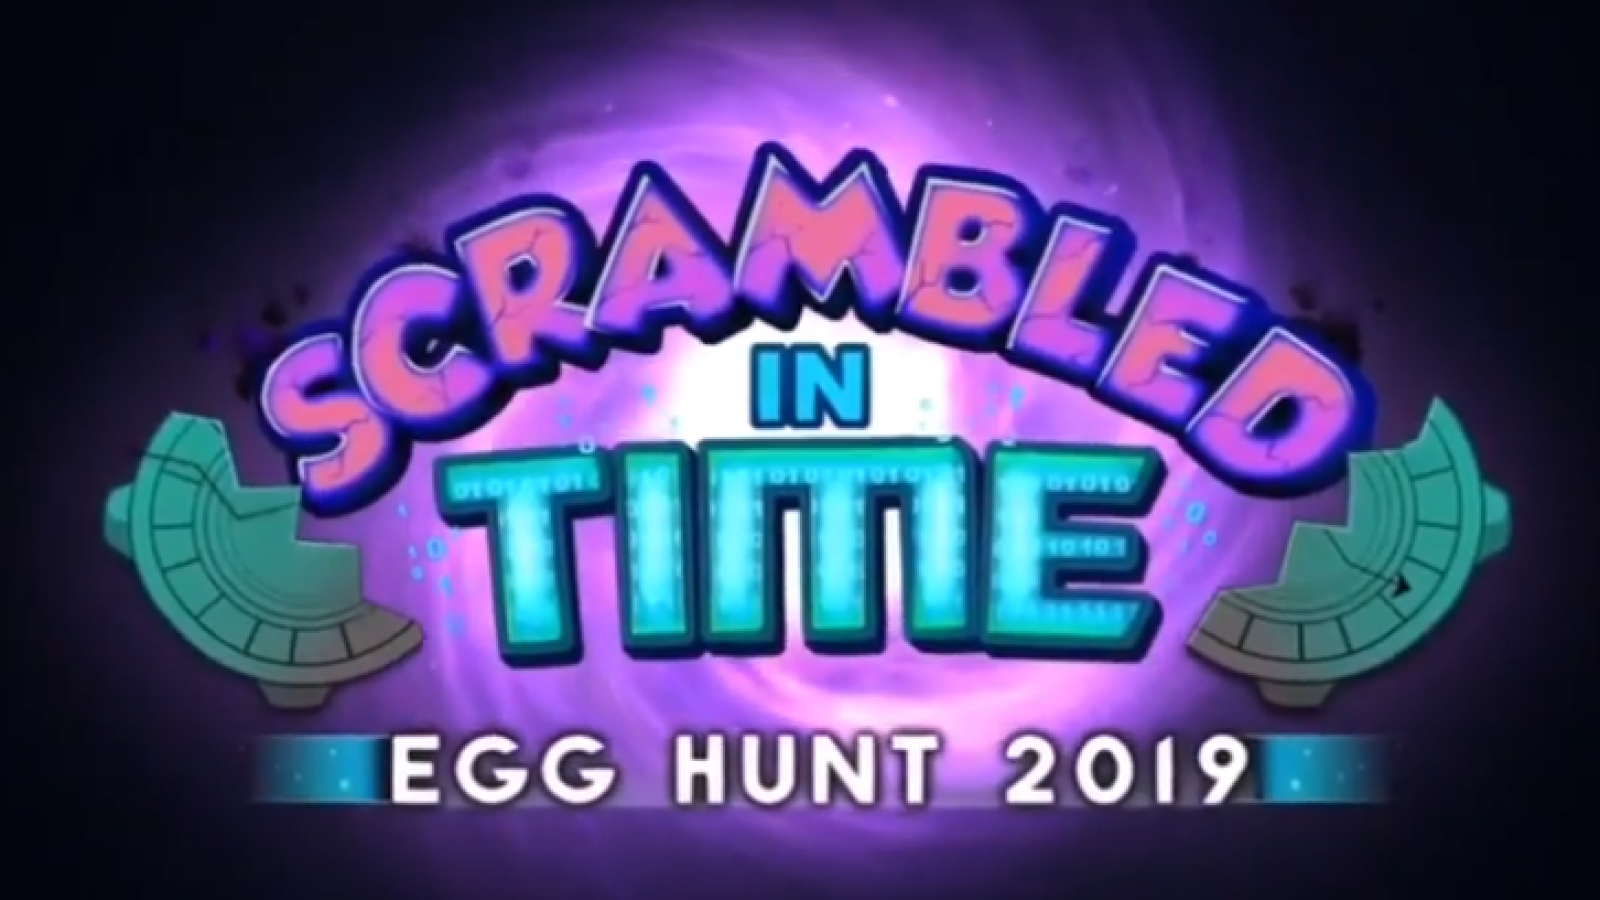 Roblox Escape Room Password For Egg Hunt 2019 Roblox Egg Hunt 2019 Locations All Eggs And Where To Find Them